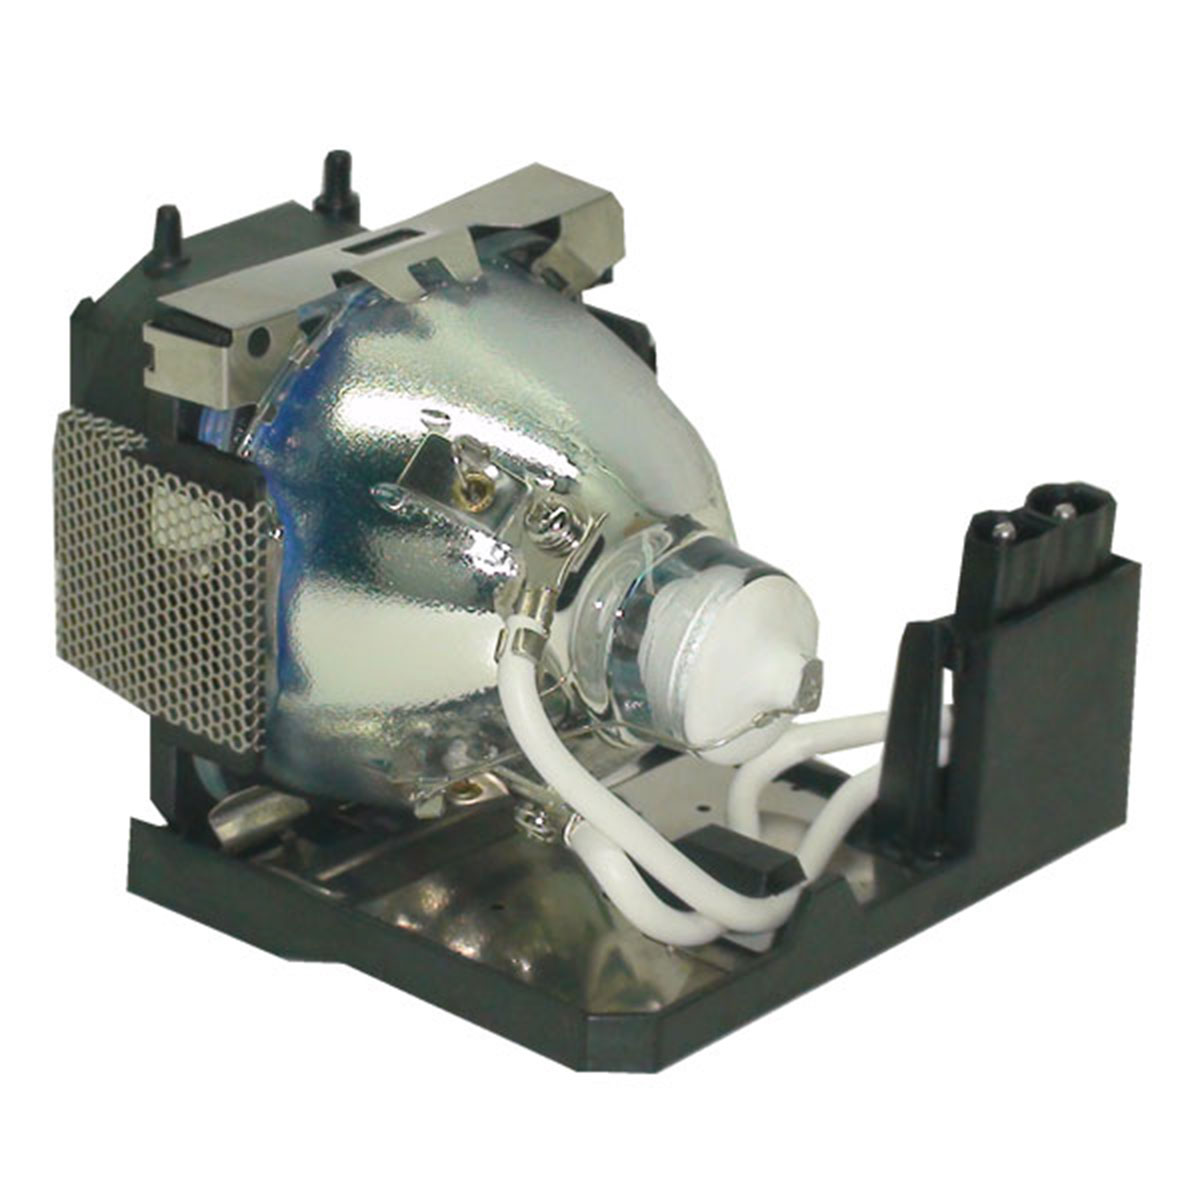 Original Osram Projector Lamp Replacement with Housing for BenQ CS.59J0Y.1B1 - image 2 of 5